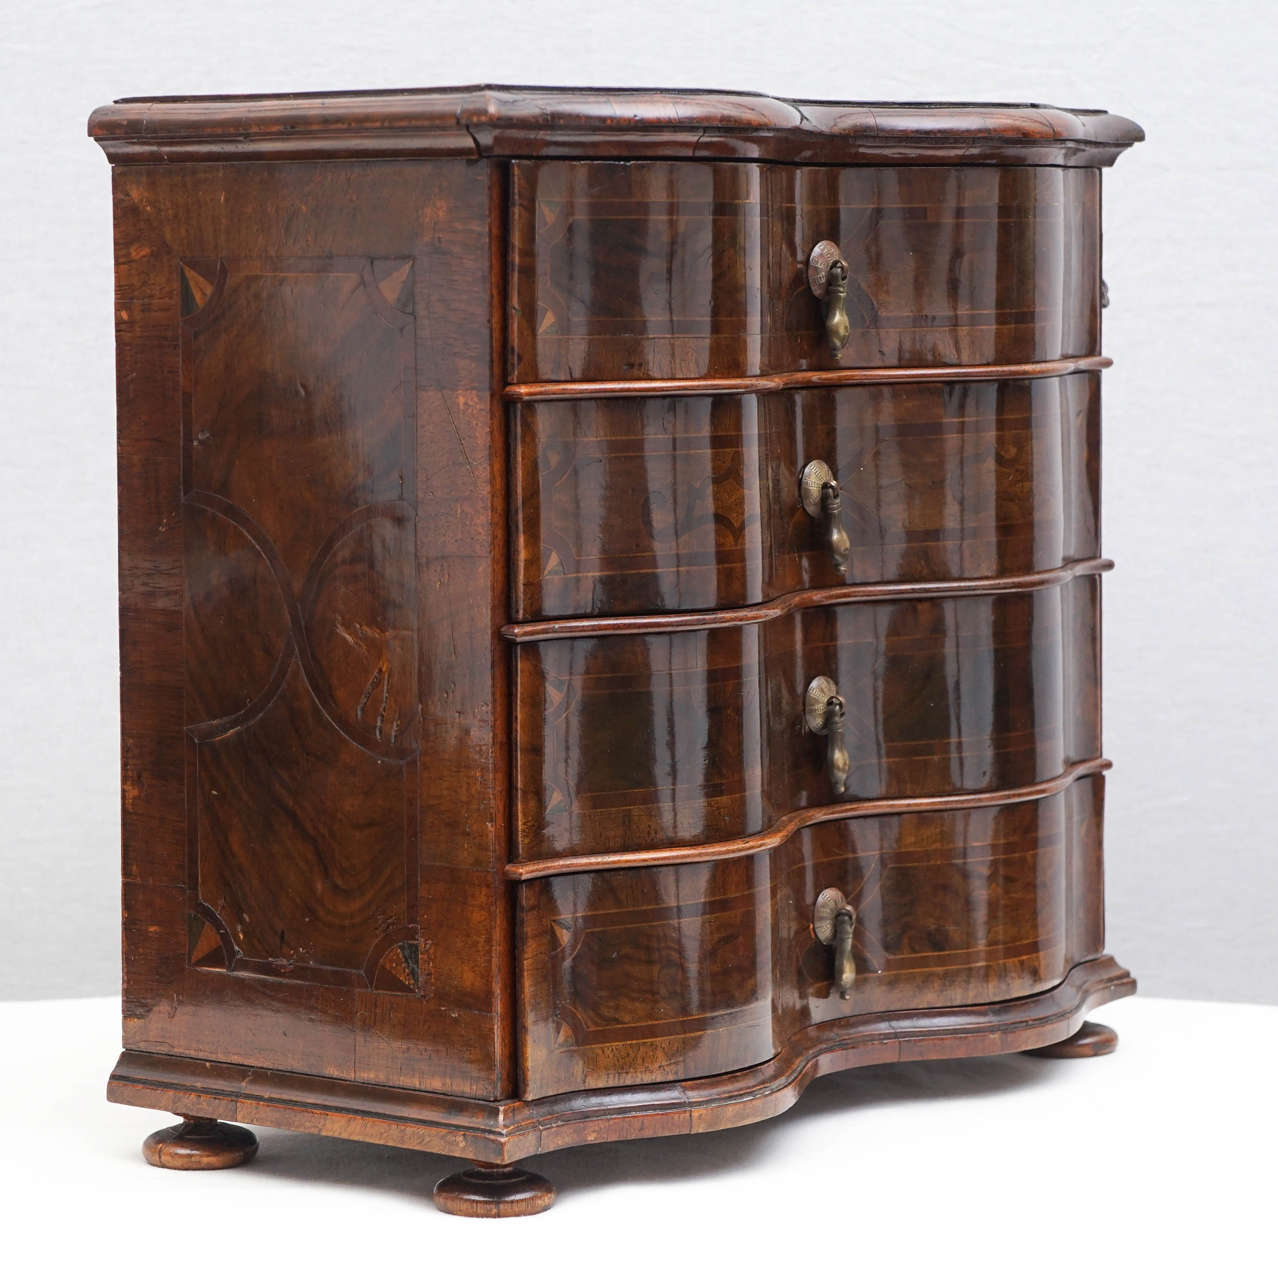 German Rococo-style walnut inlaid miniature serpentine-fronted chest of drawers, with locking device and key. Teardrop metal drawer pulls. Intricate locking device that secures all the drawers. Interior of all the drawers painted in precious metal